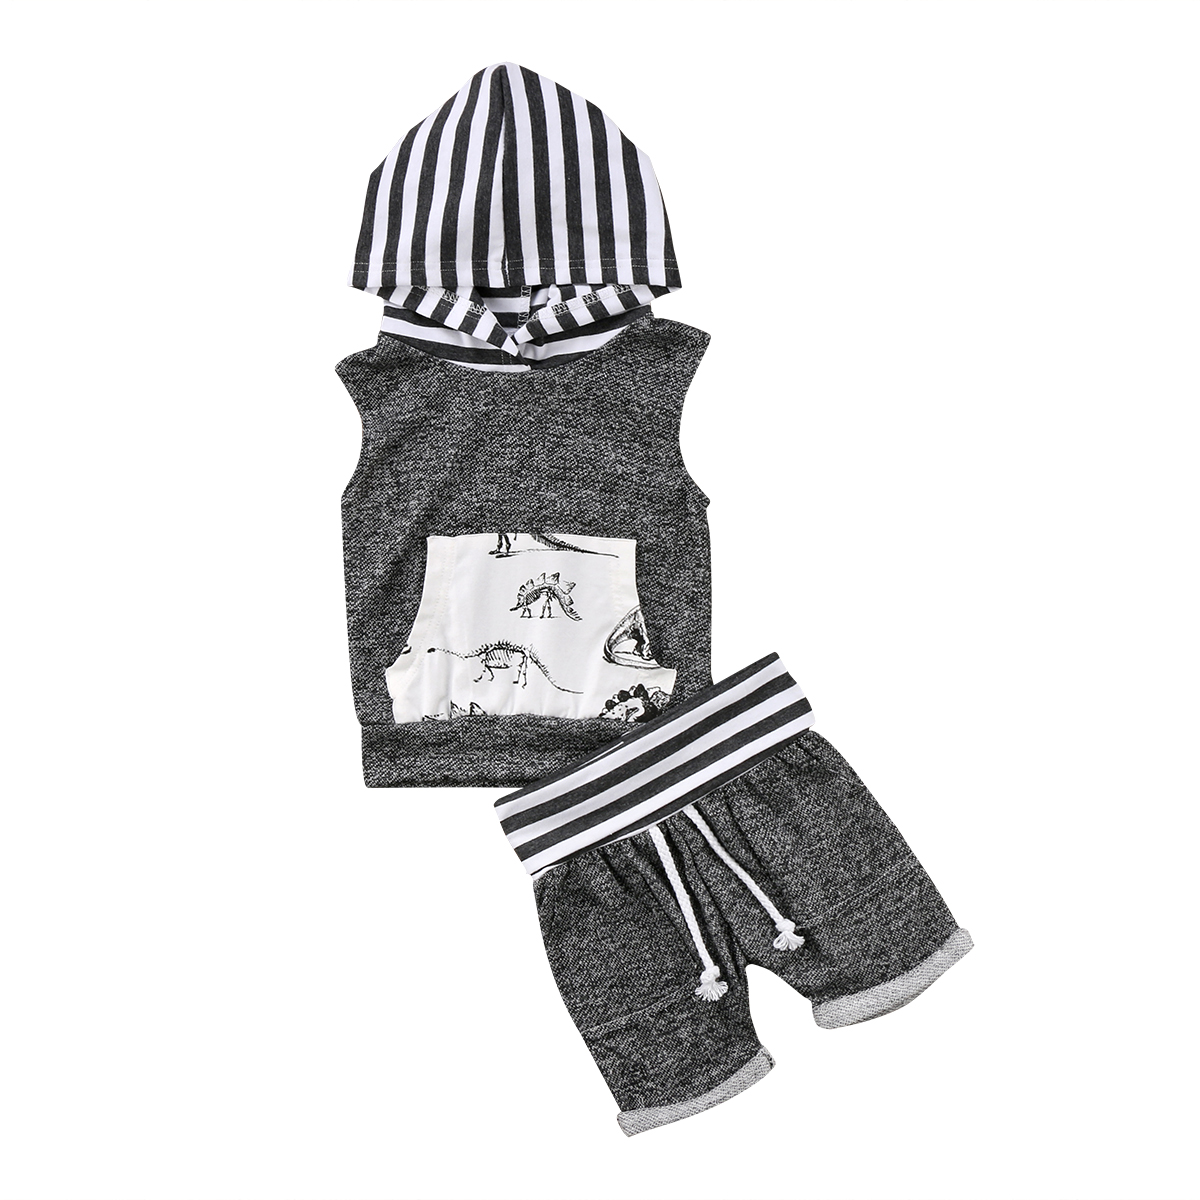 2018 new casual Toddler Kids Baby Boy sleeveless striped hooded tank Tops+Shorts Pants 2pcs kid Outfit Dinosaur Clothes Set t shirt tops cotton denim pants 2pcs clothes sets newborn toddler kid infant baby boy clothes outfit set au 2016 new boys